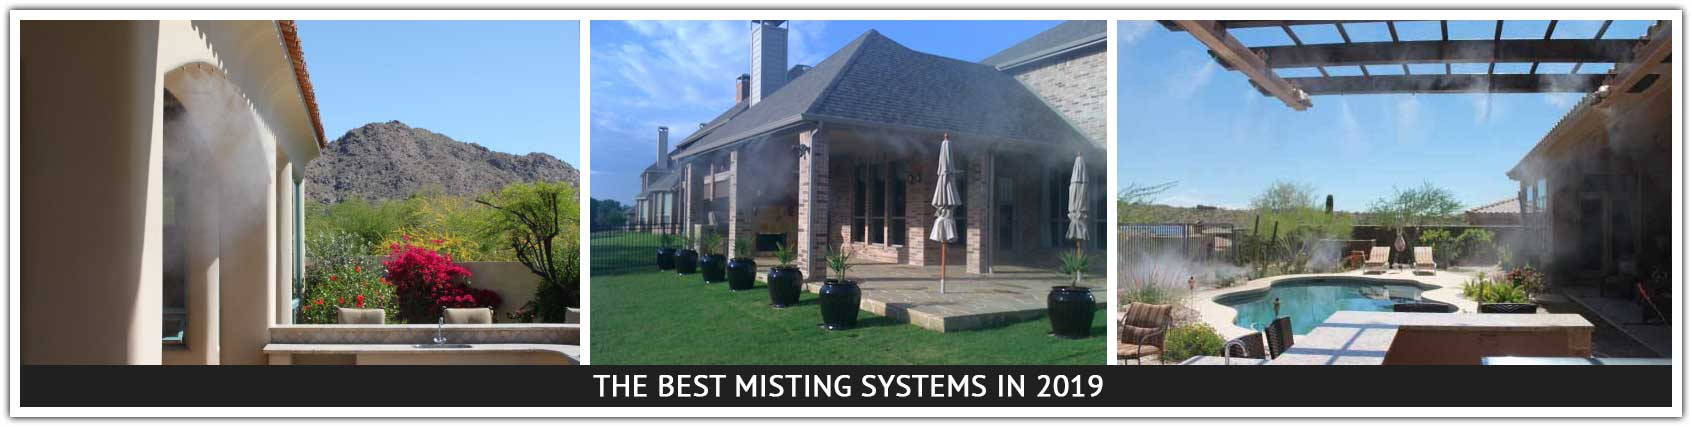 The best misting systems for 2019